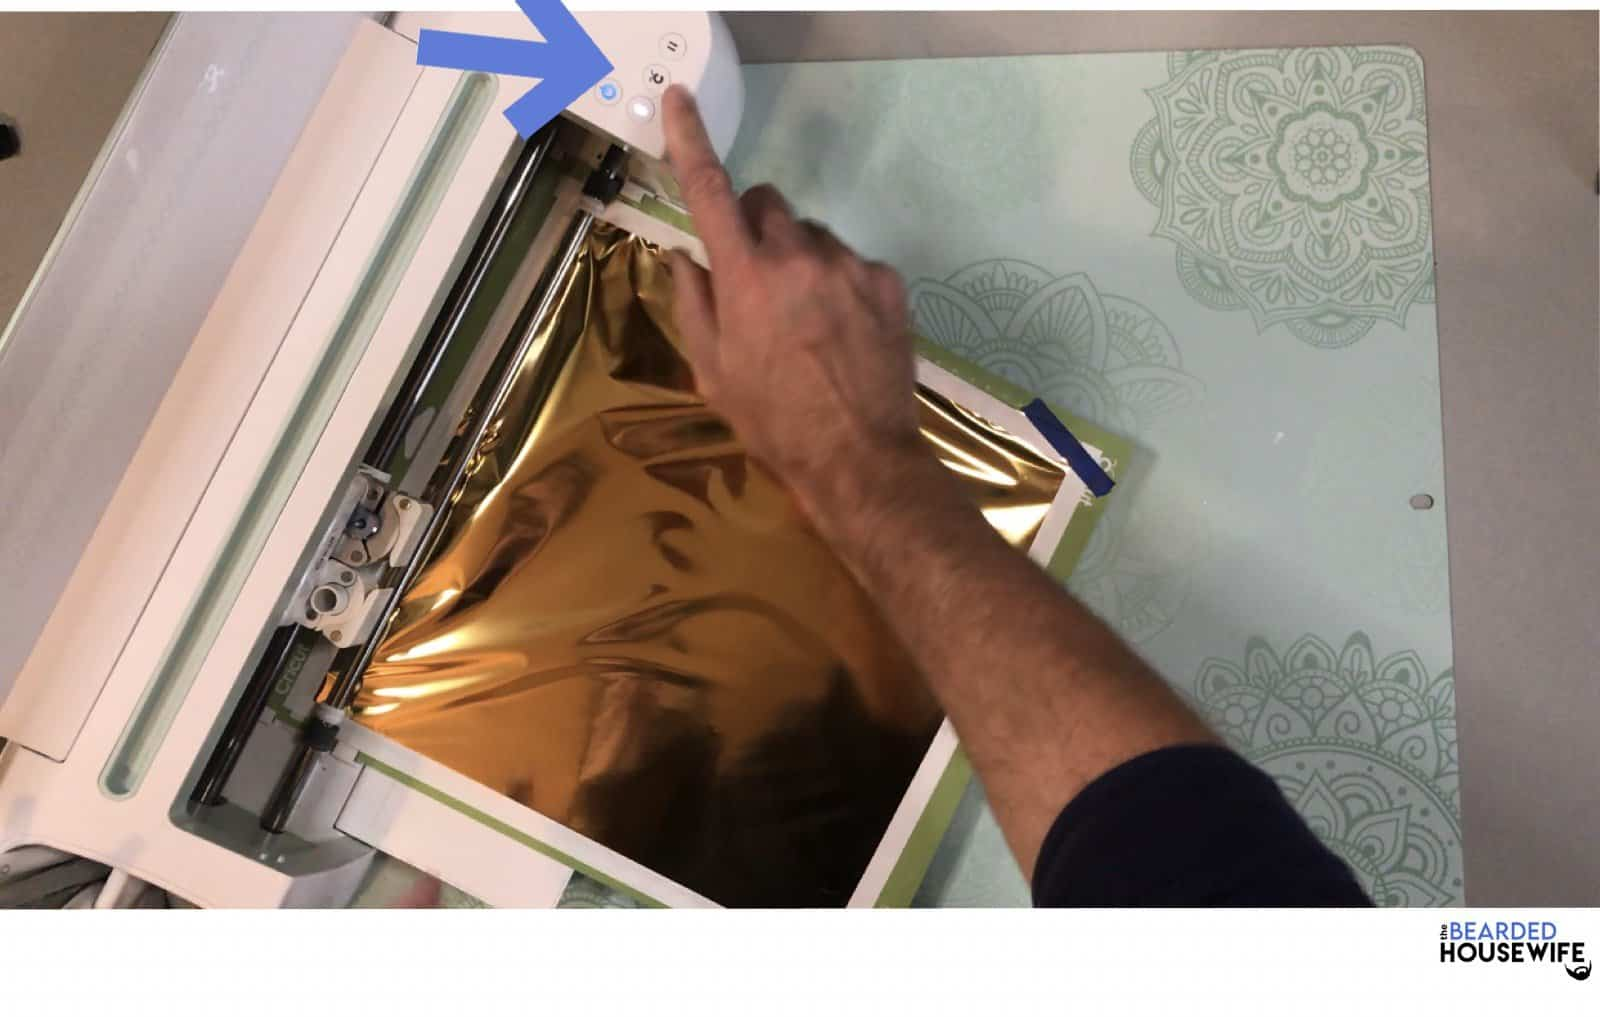 click the flashing C to begin foiling